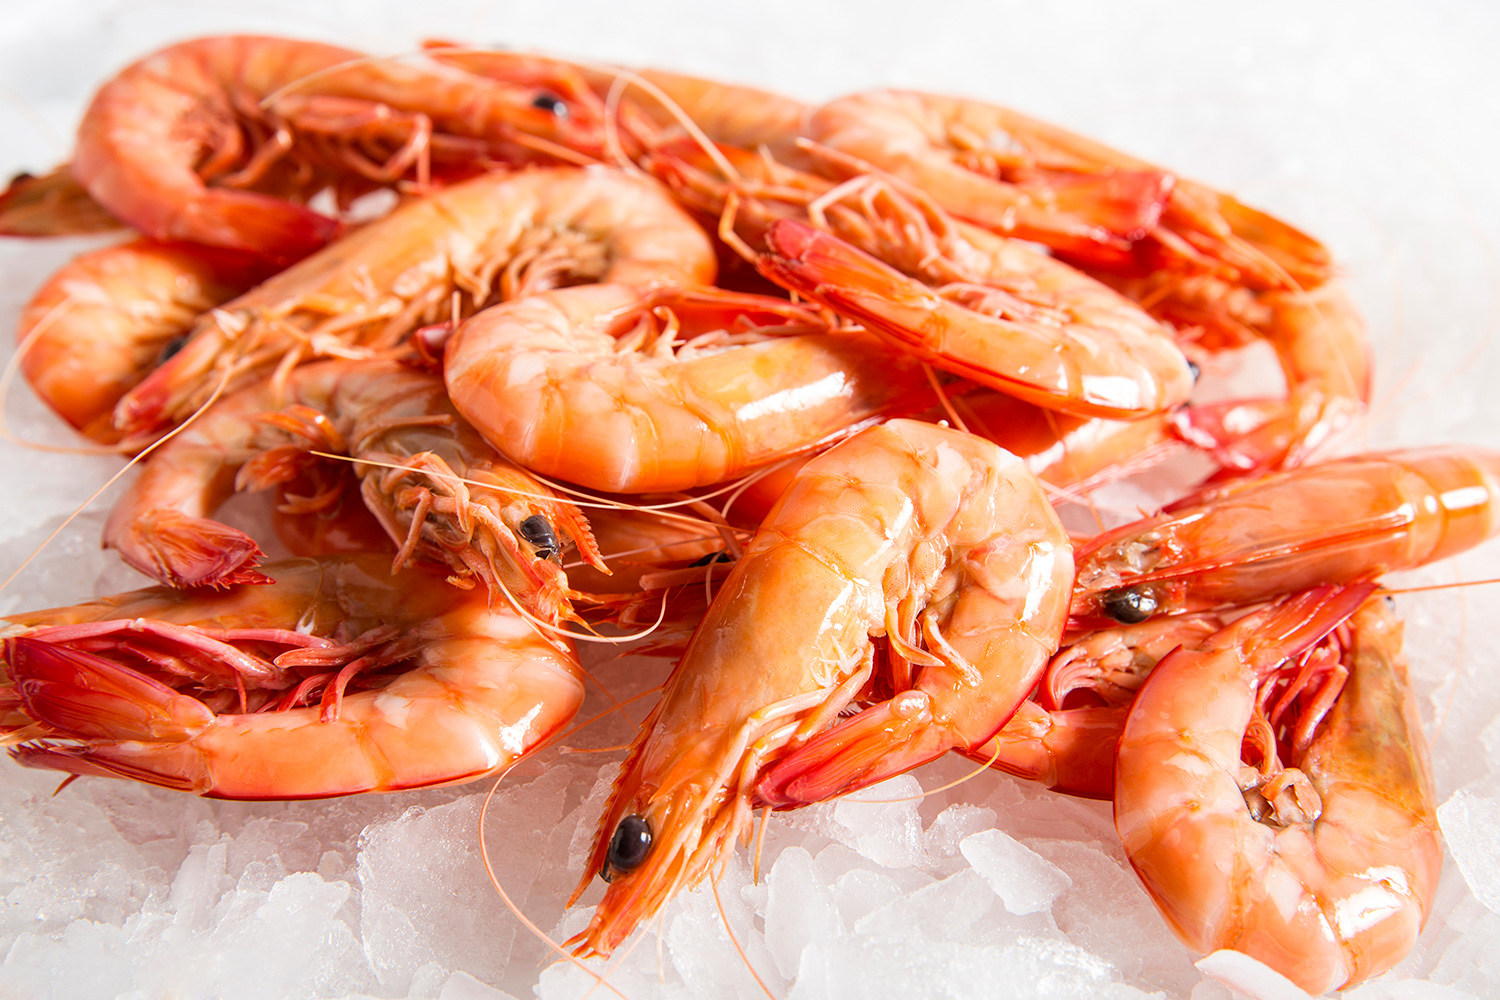 Ocean-King-Prawns-Cooked-Small.jpg